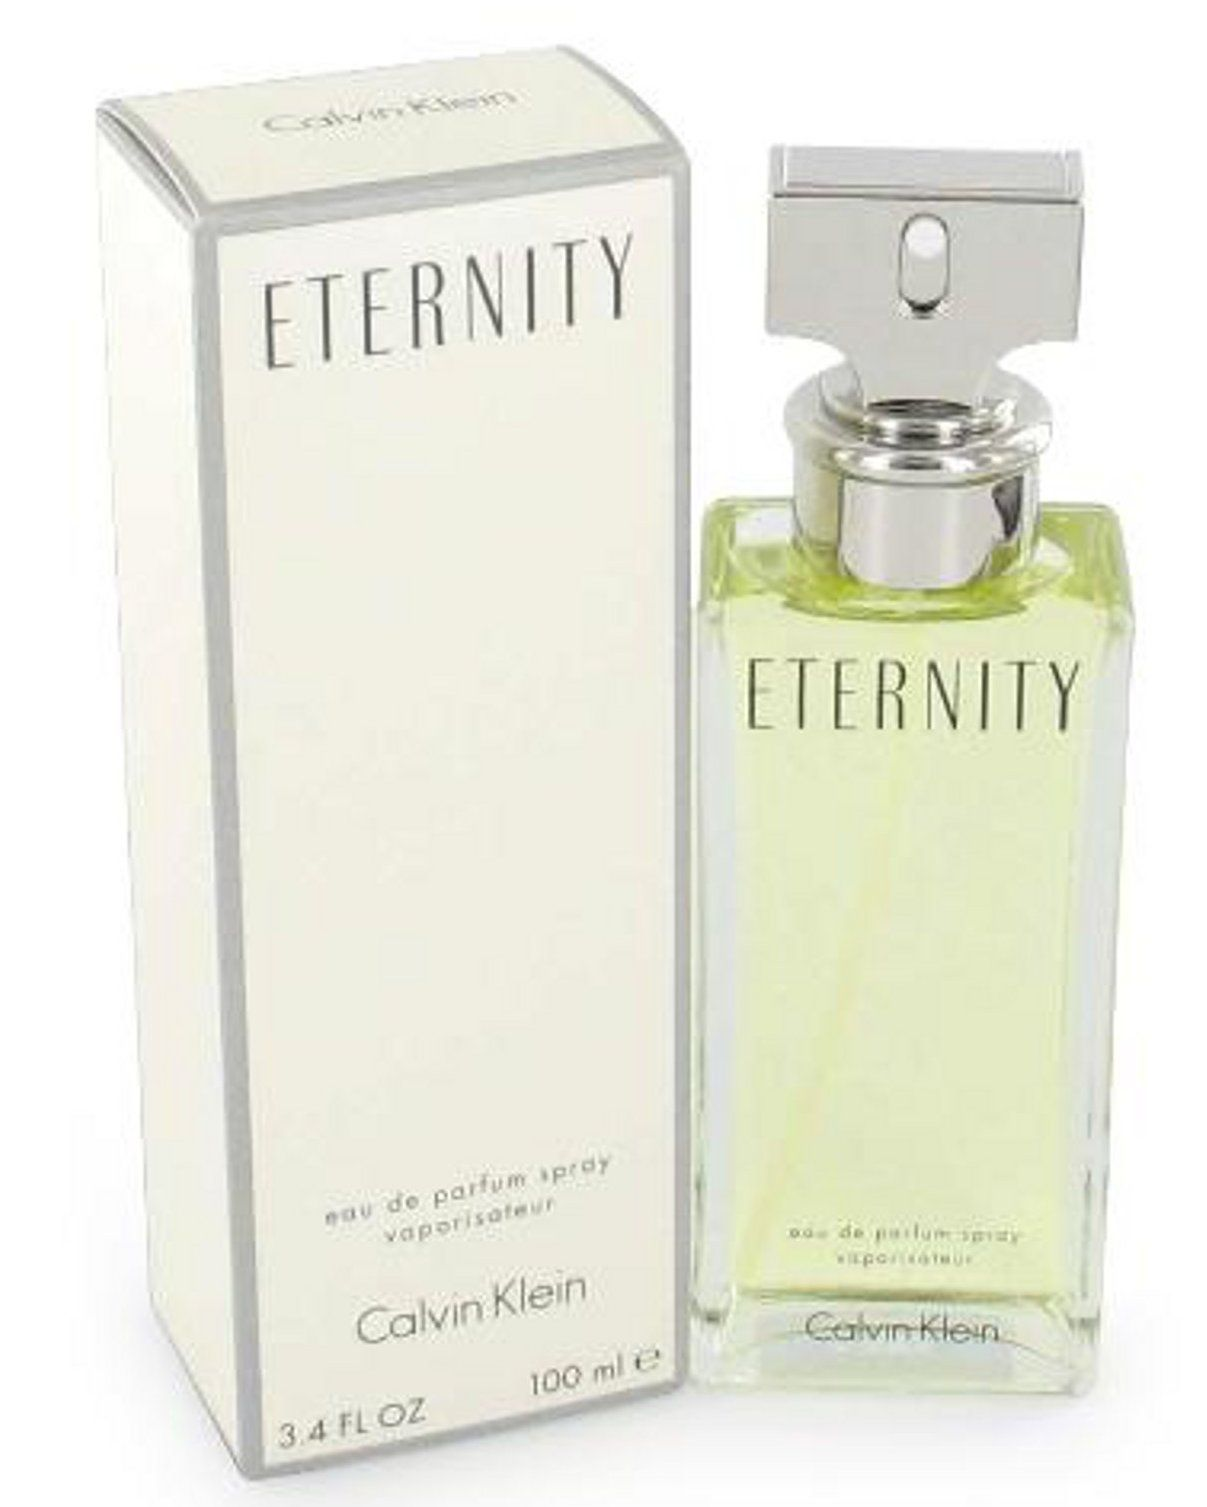 Eternity Perfume By Calvin Klein 34 Oz Edp For Women New Box Sealed